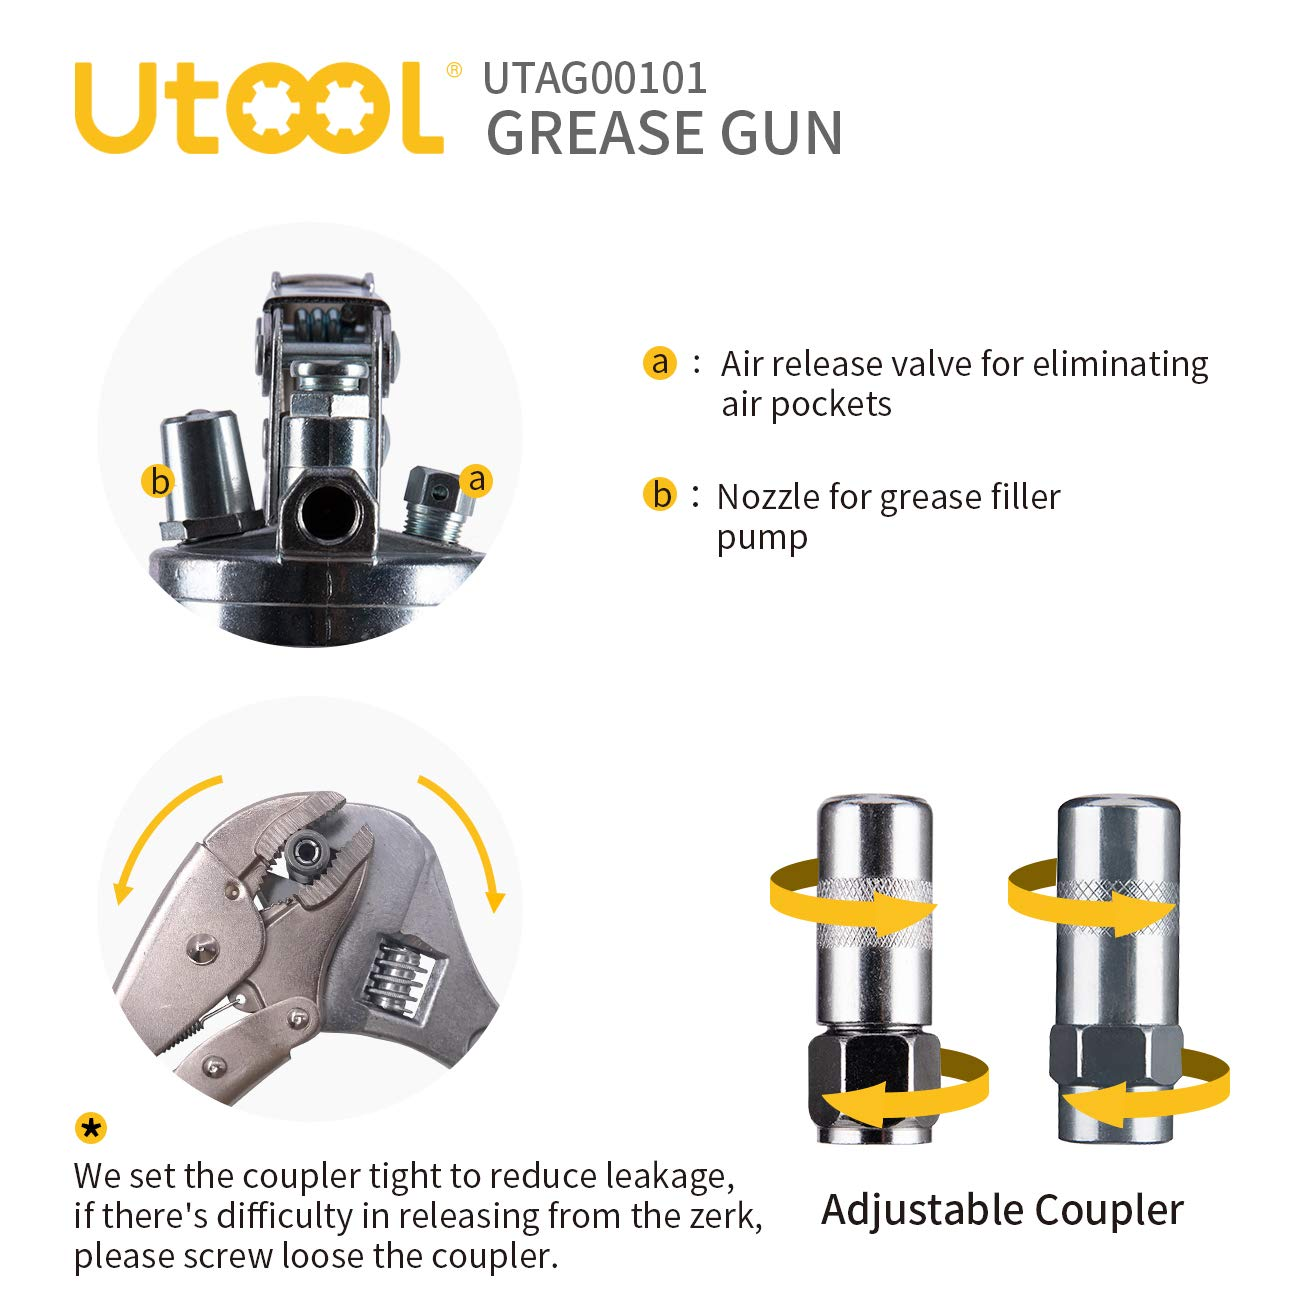 UTOOL Grease Gun Heavy Duty Pistol Grip Grease Gun Set with 7,000 PSI, 14 oz Load, 18 Inch Spring Flex Hose, 2 Working Coupler, 2 Extension Rigid Pipe and 1 Sharp Type Nozzle Included by UTOOL (Image #4)